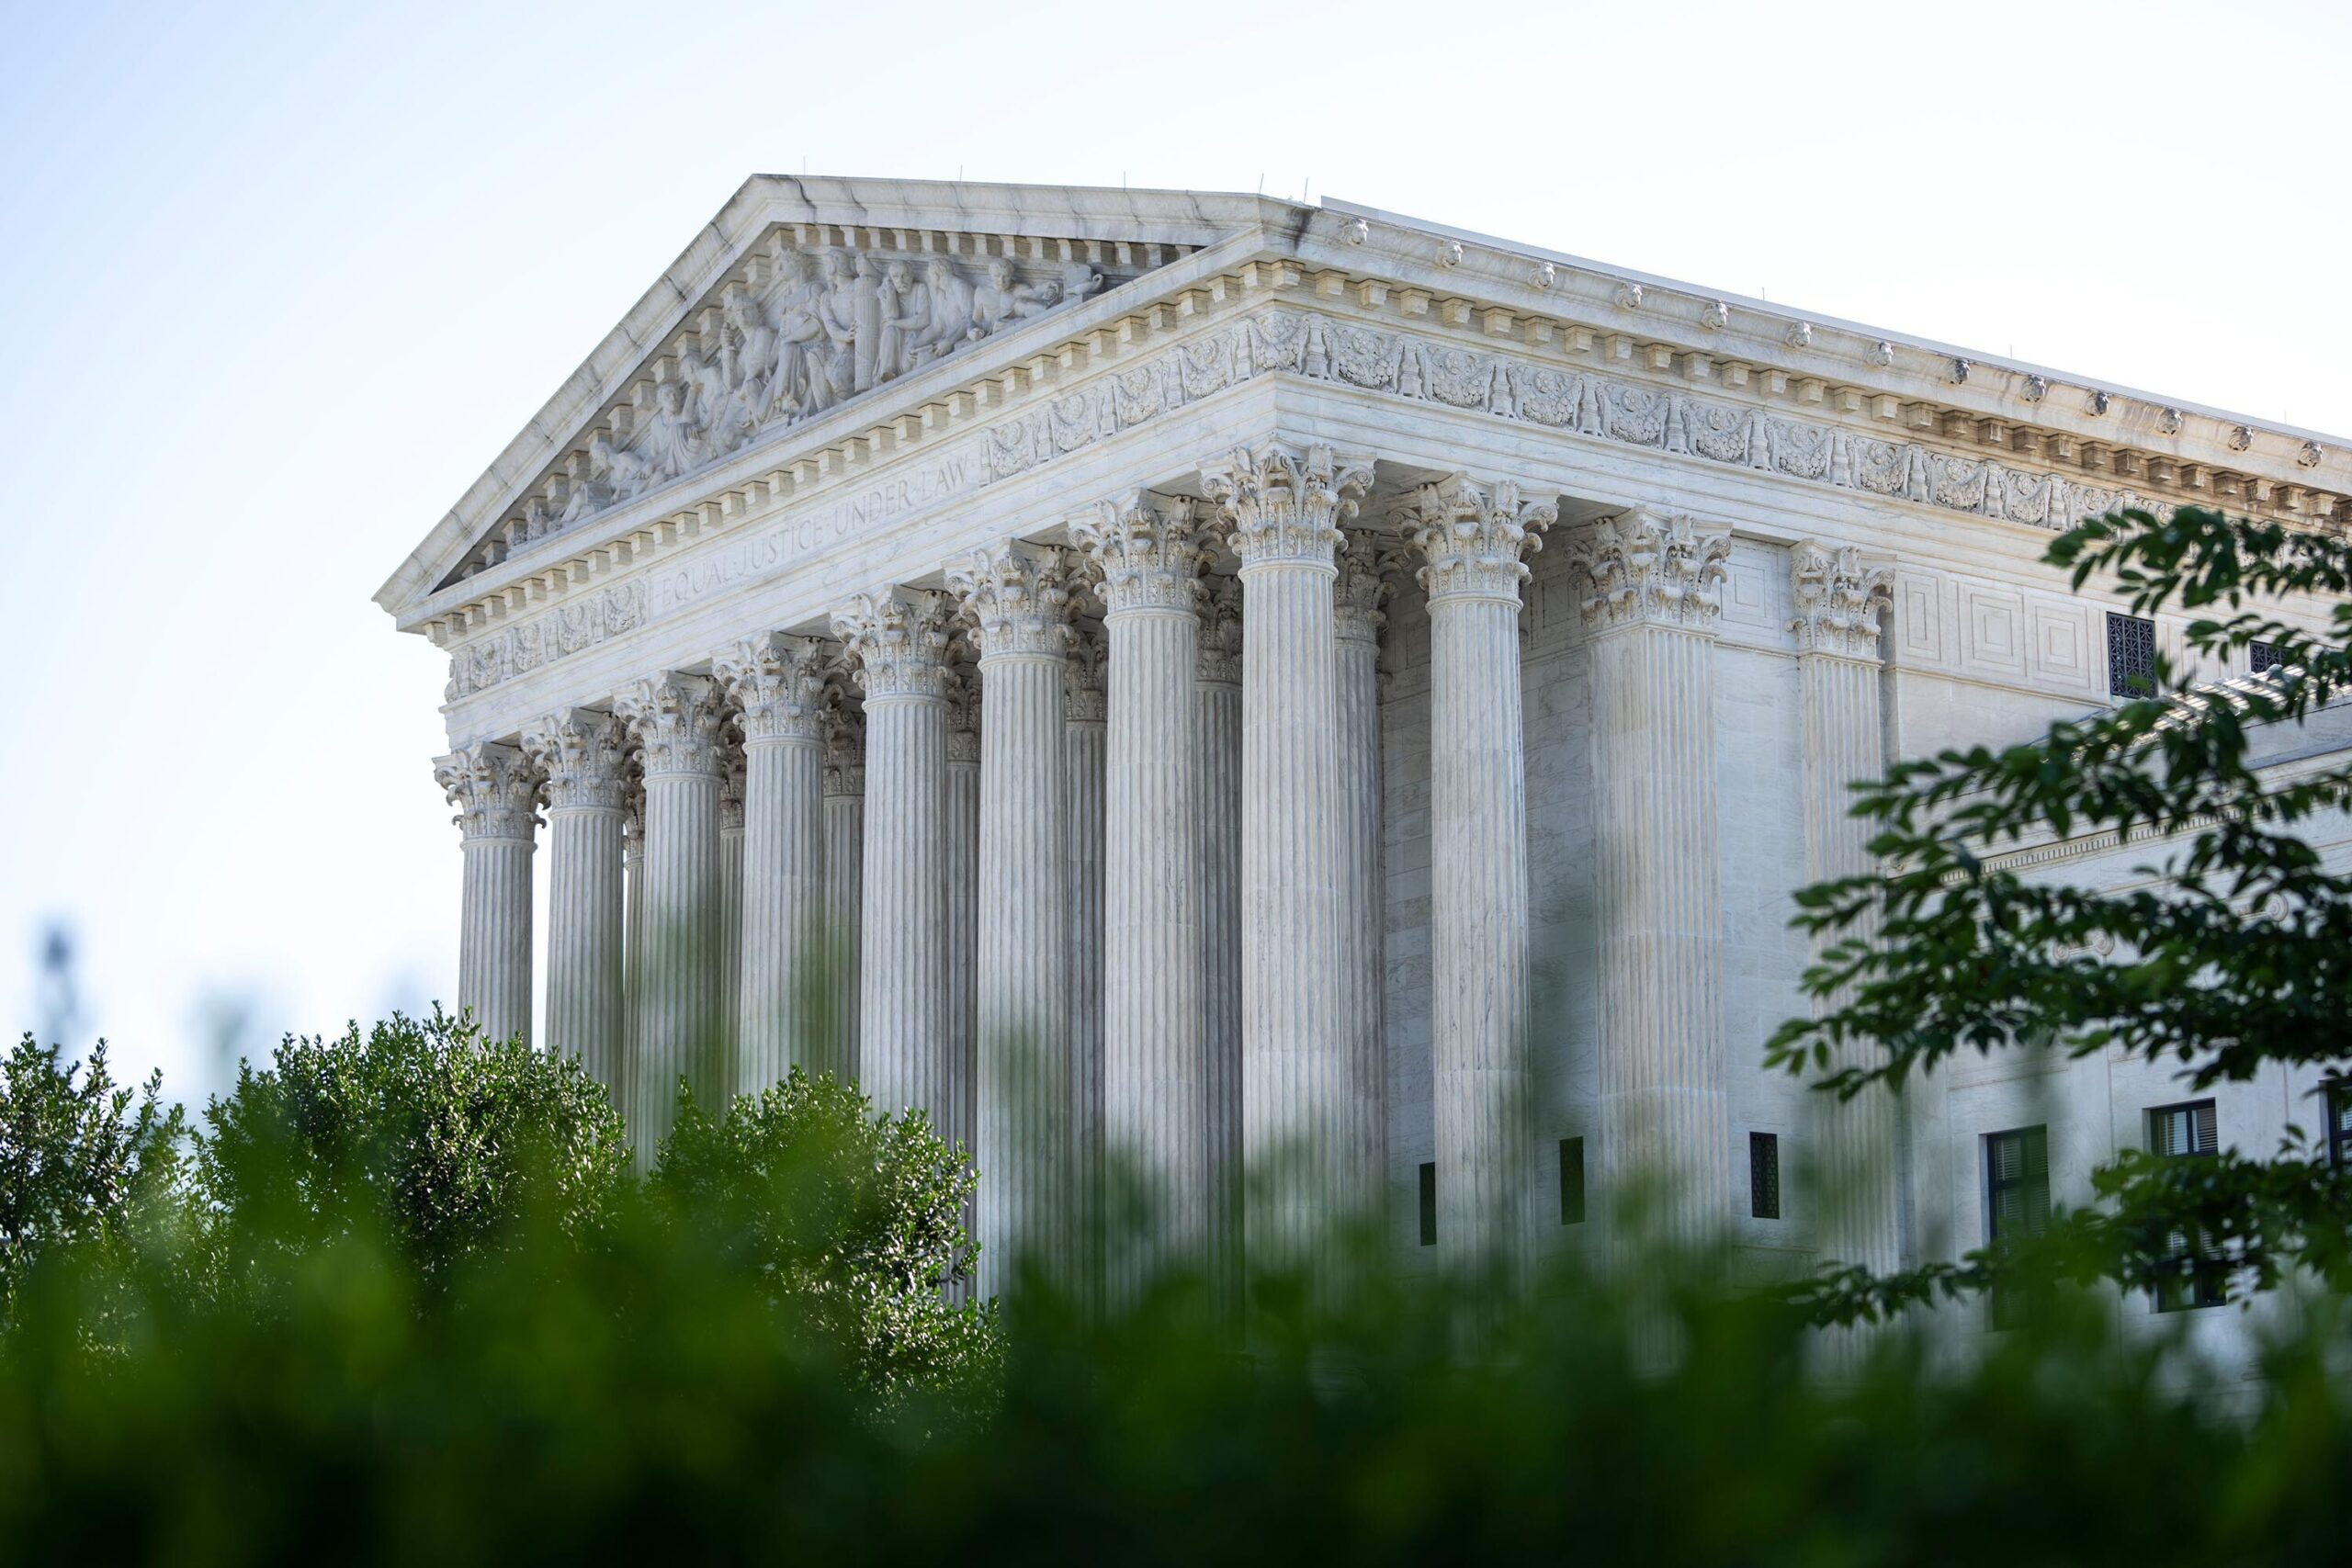 <i>Drew Angerer/Getty Images</i><br/>A view of the U.S. Supreme Court is shown on June 28 in Washington